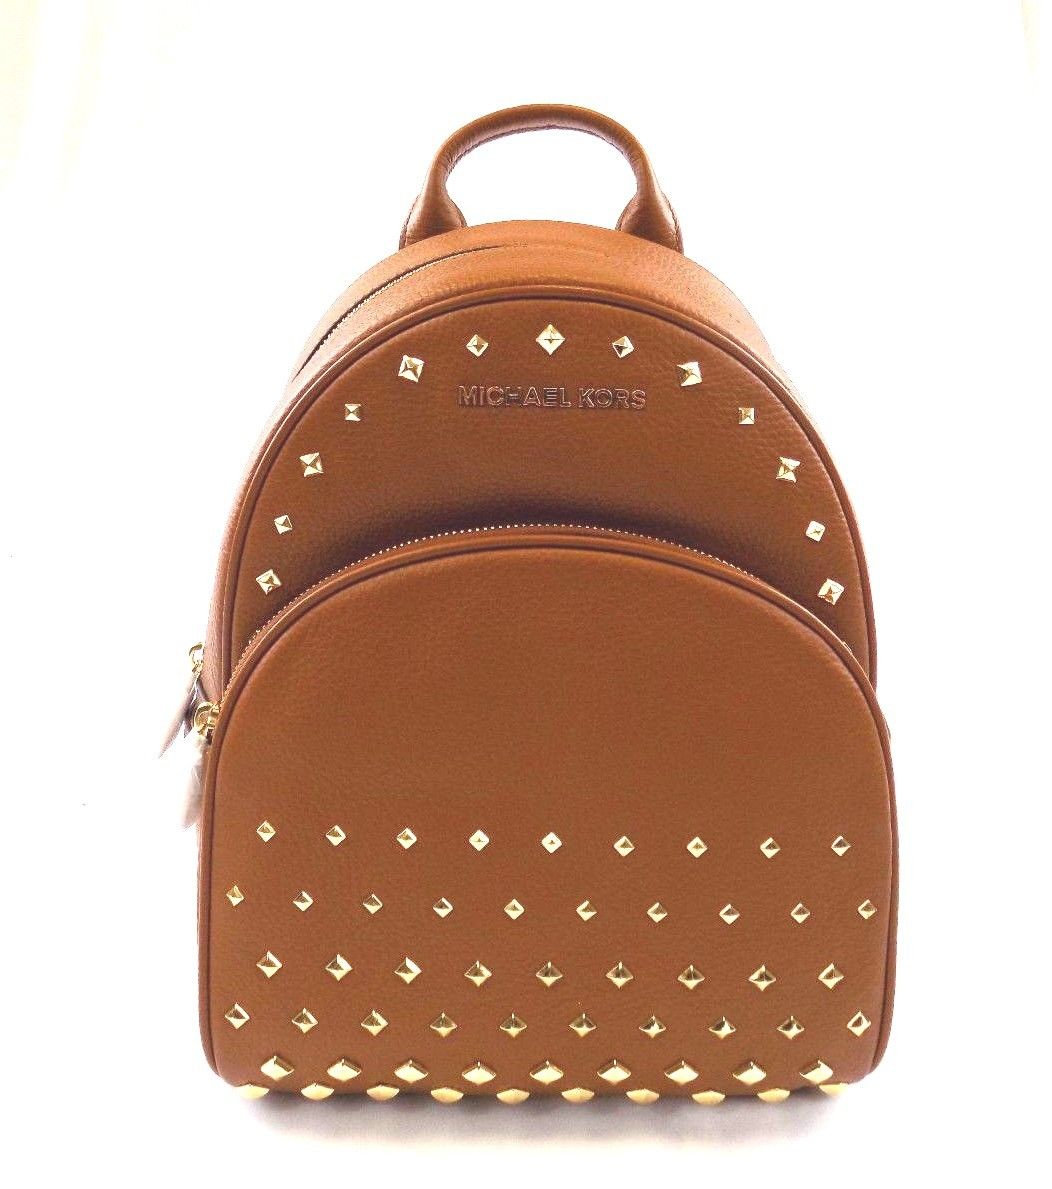 bb67e254f988 ... promo code for new womens michael kors abbey medium studded brown  luggage leather backpack bag c95ad